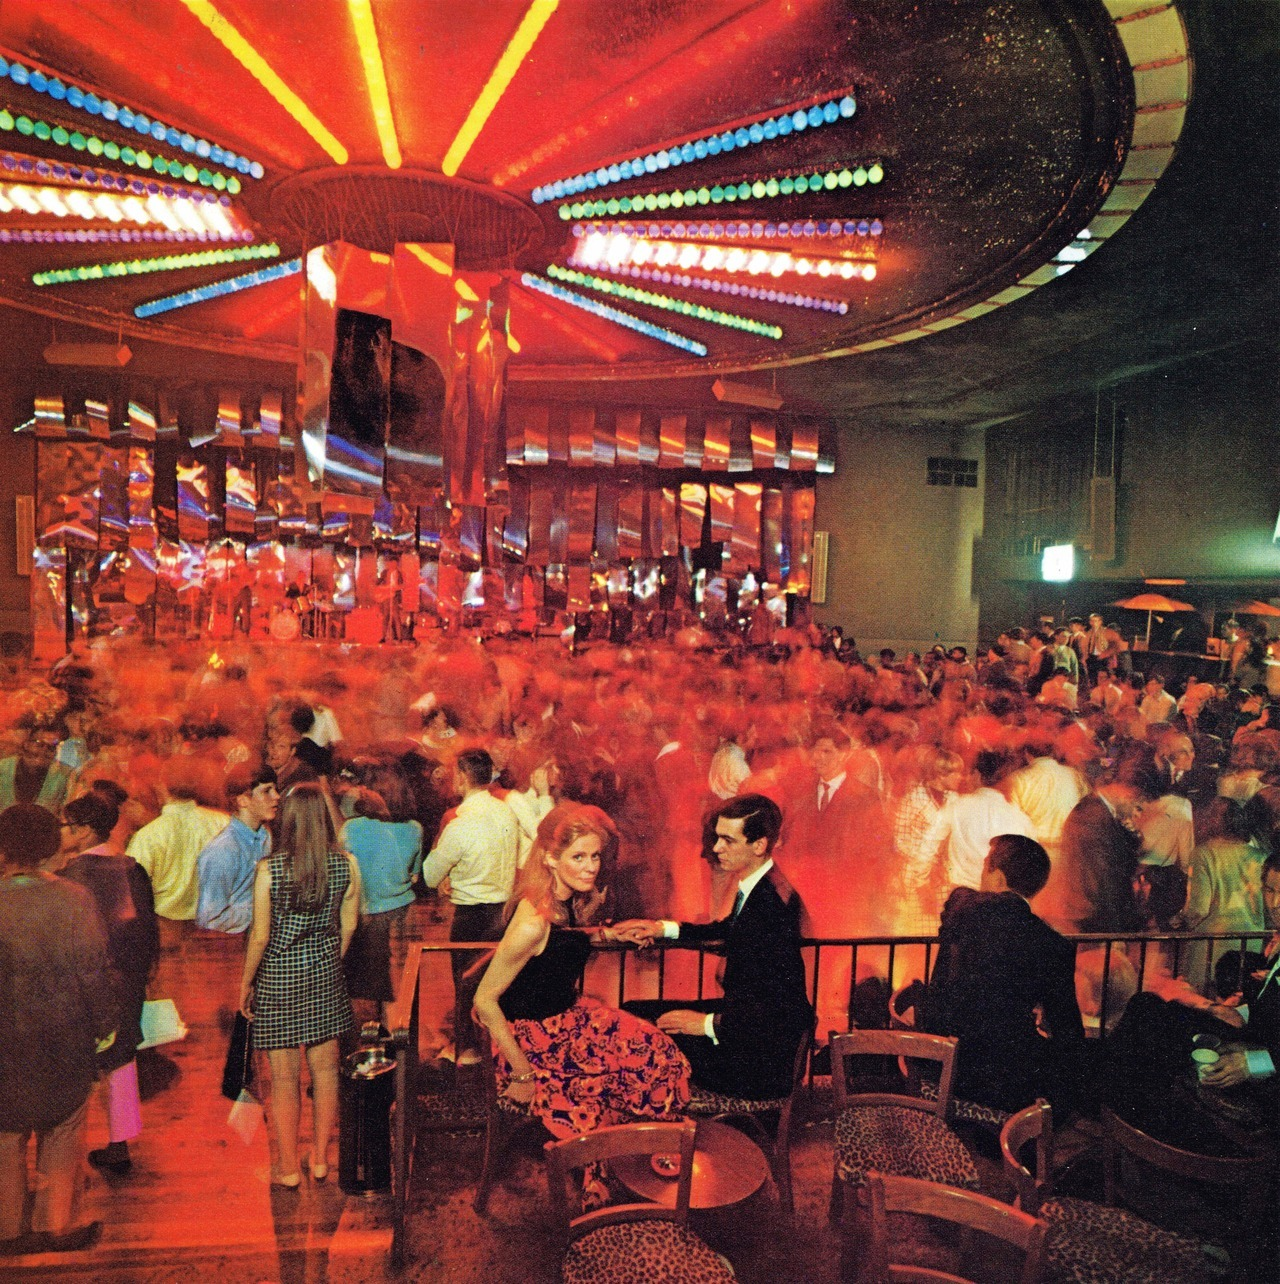 Before Disco… the Cheetah nightclub in New York City, 1967